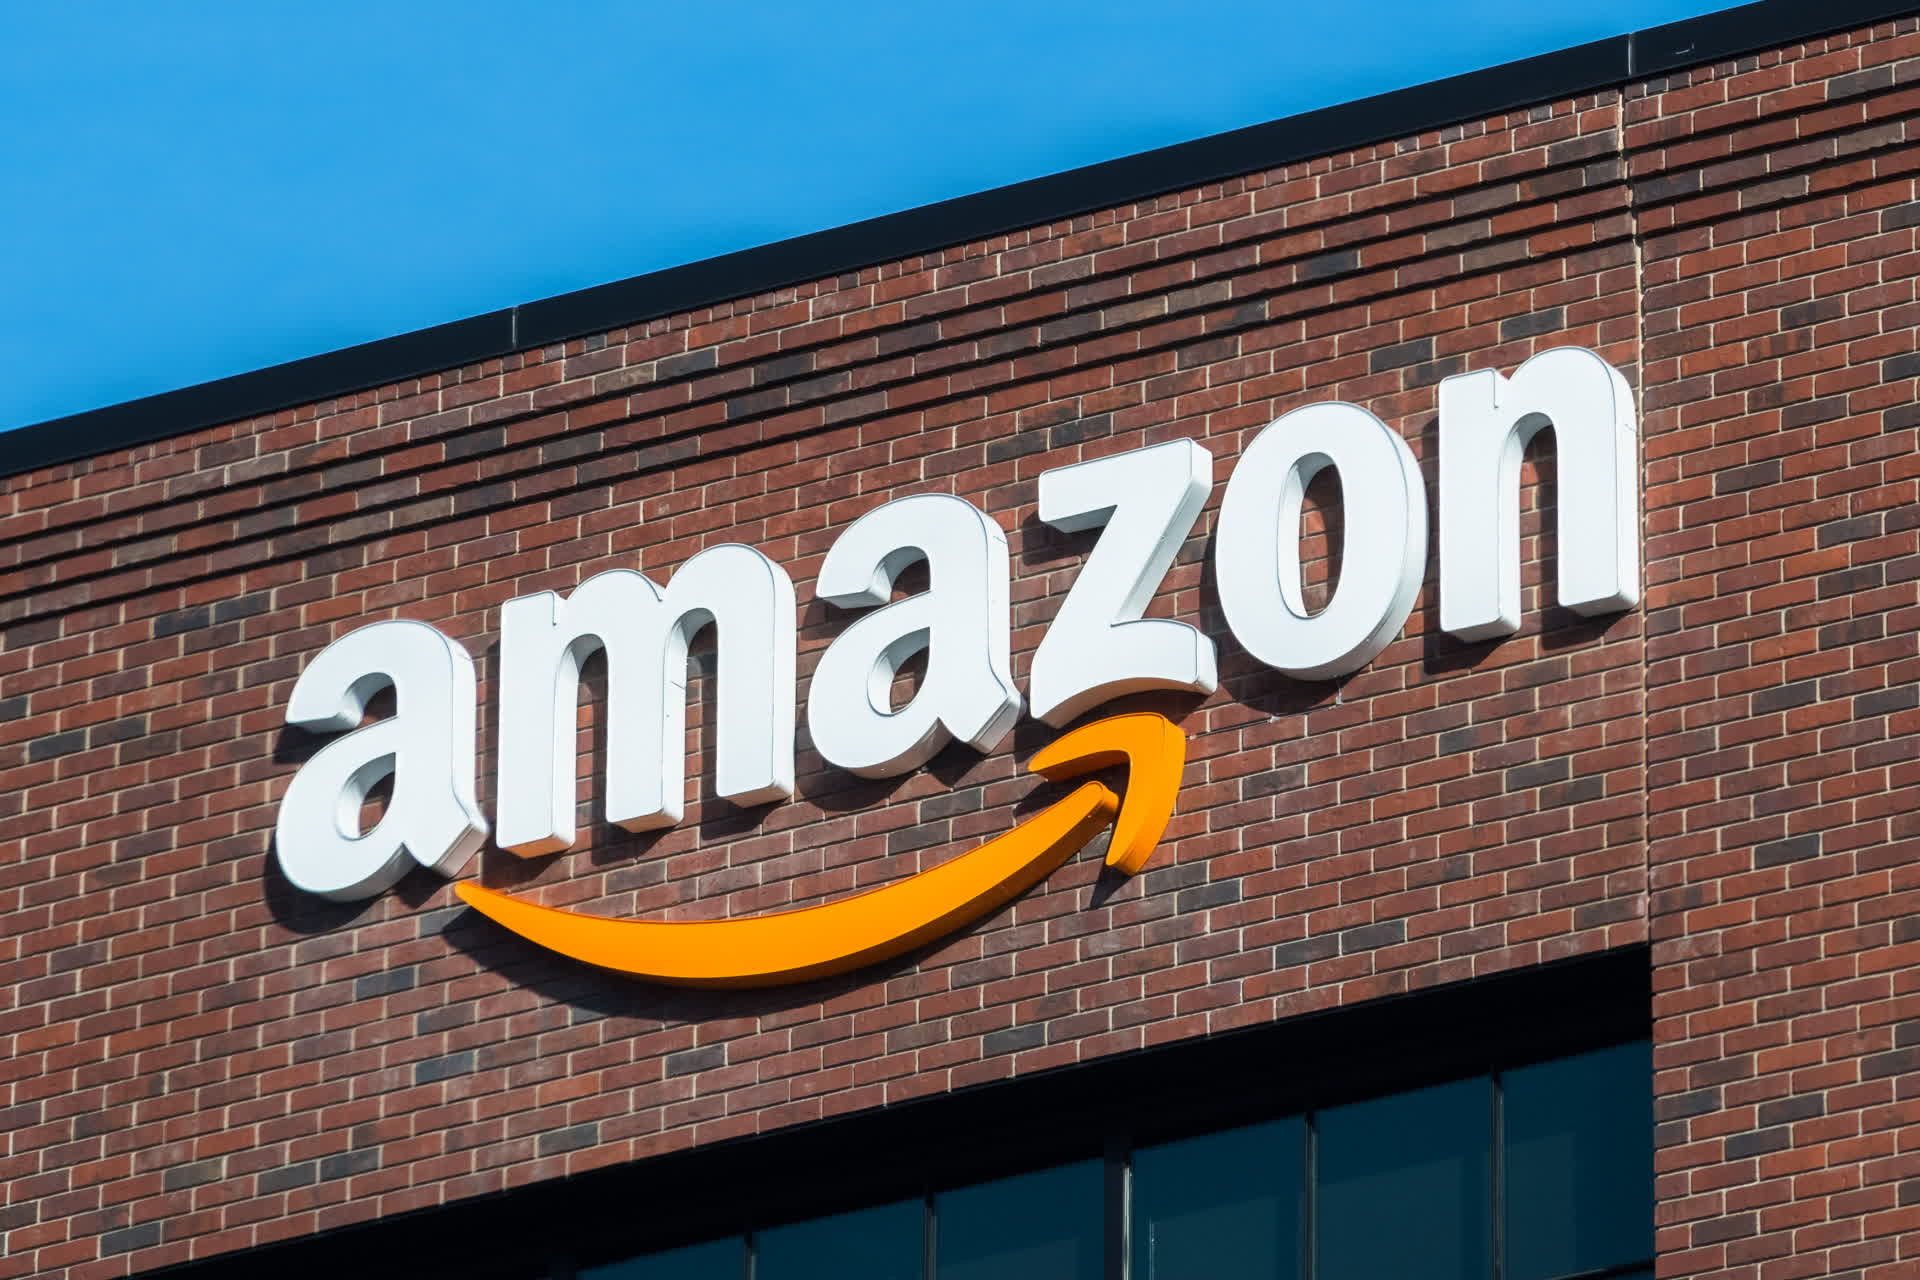 Amazon wades into another PR fiasco after claiming its workers don't urinate in bottles